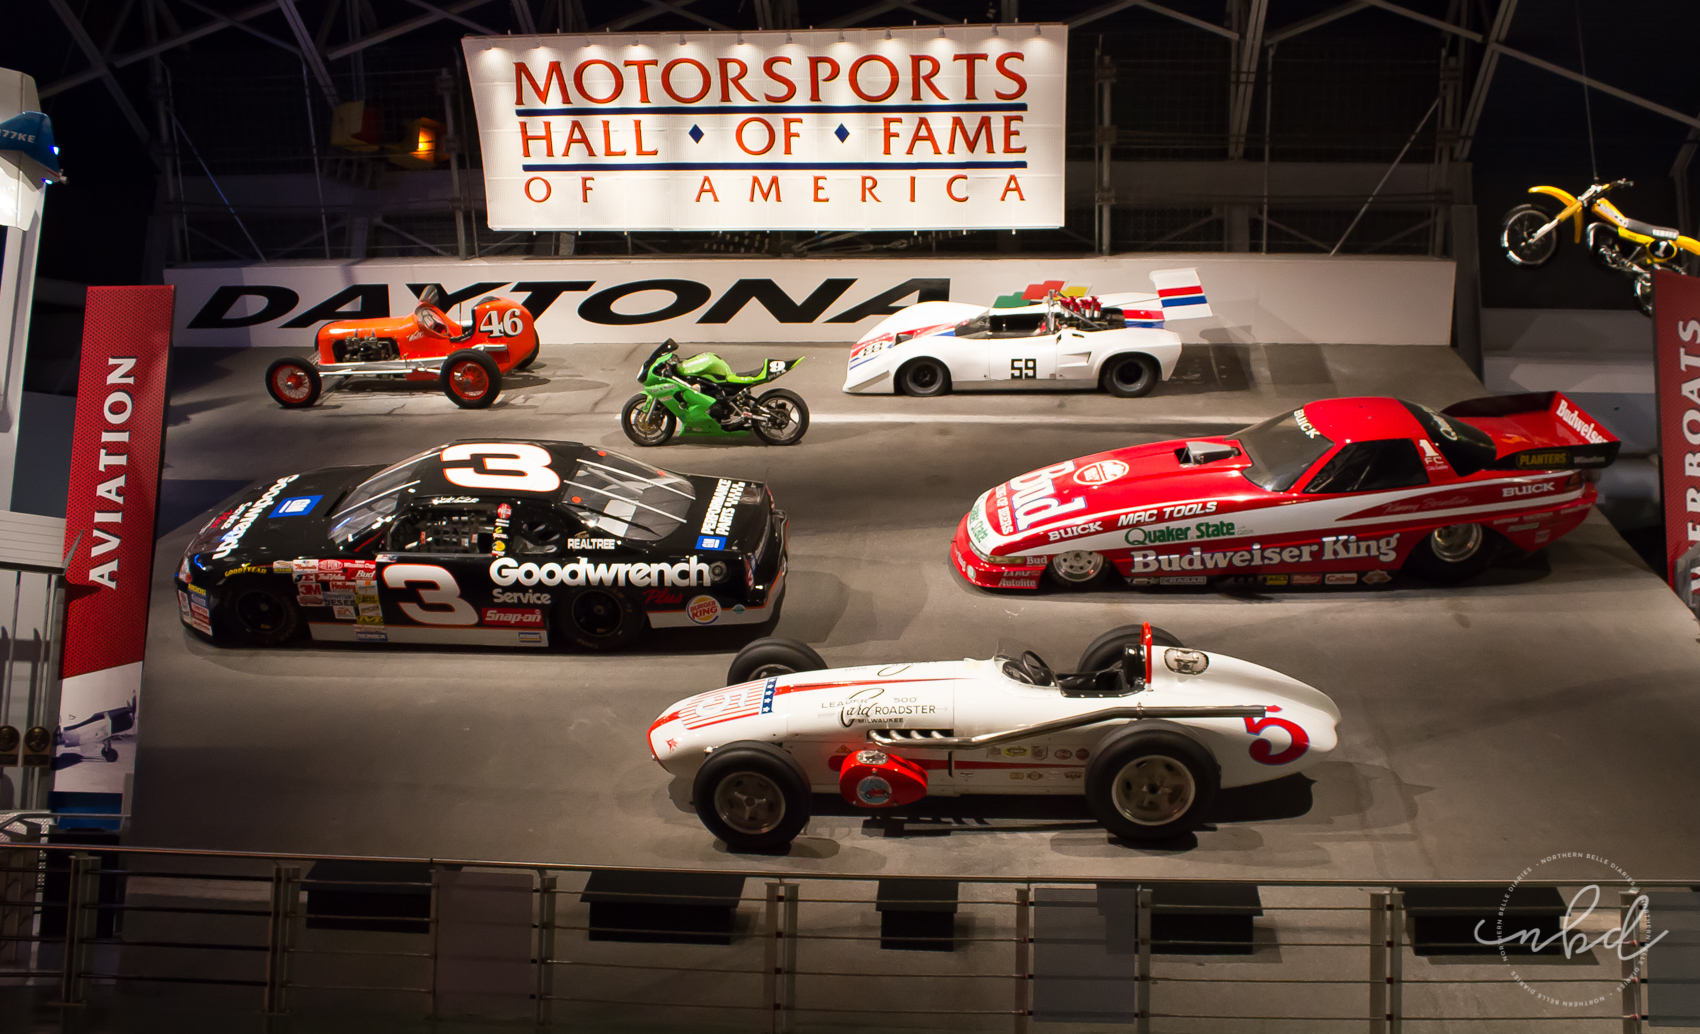 Daytona International Speedway Museum - Daytona Beach